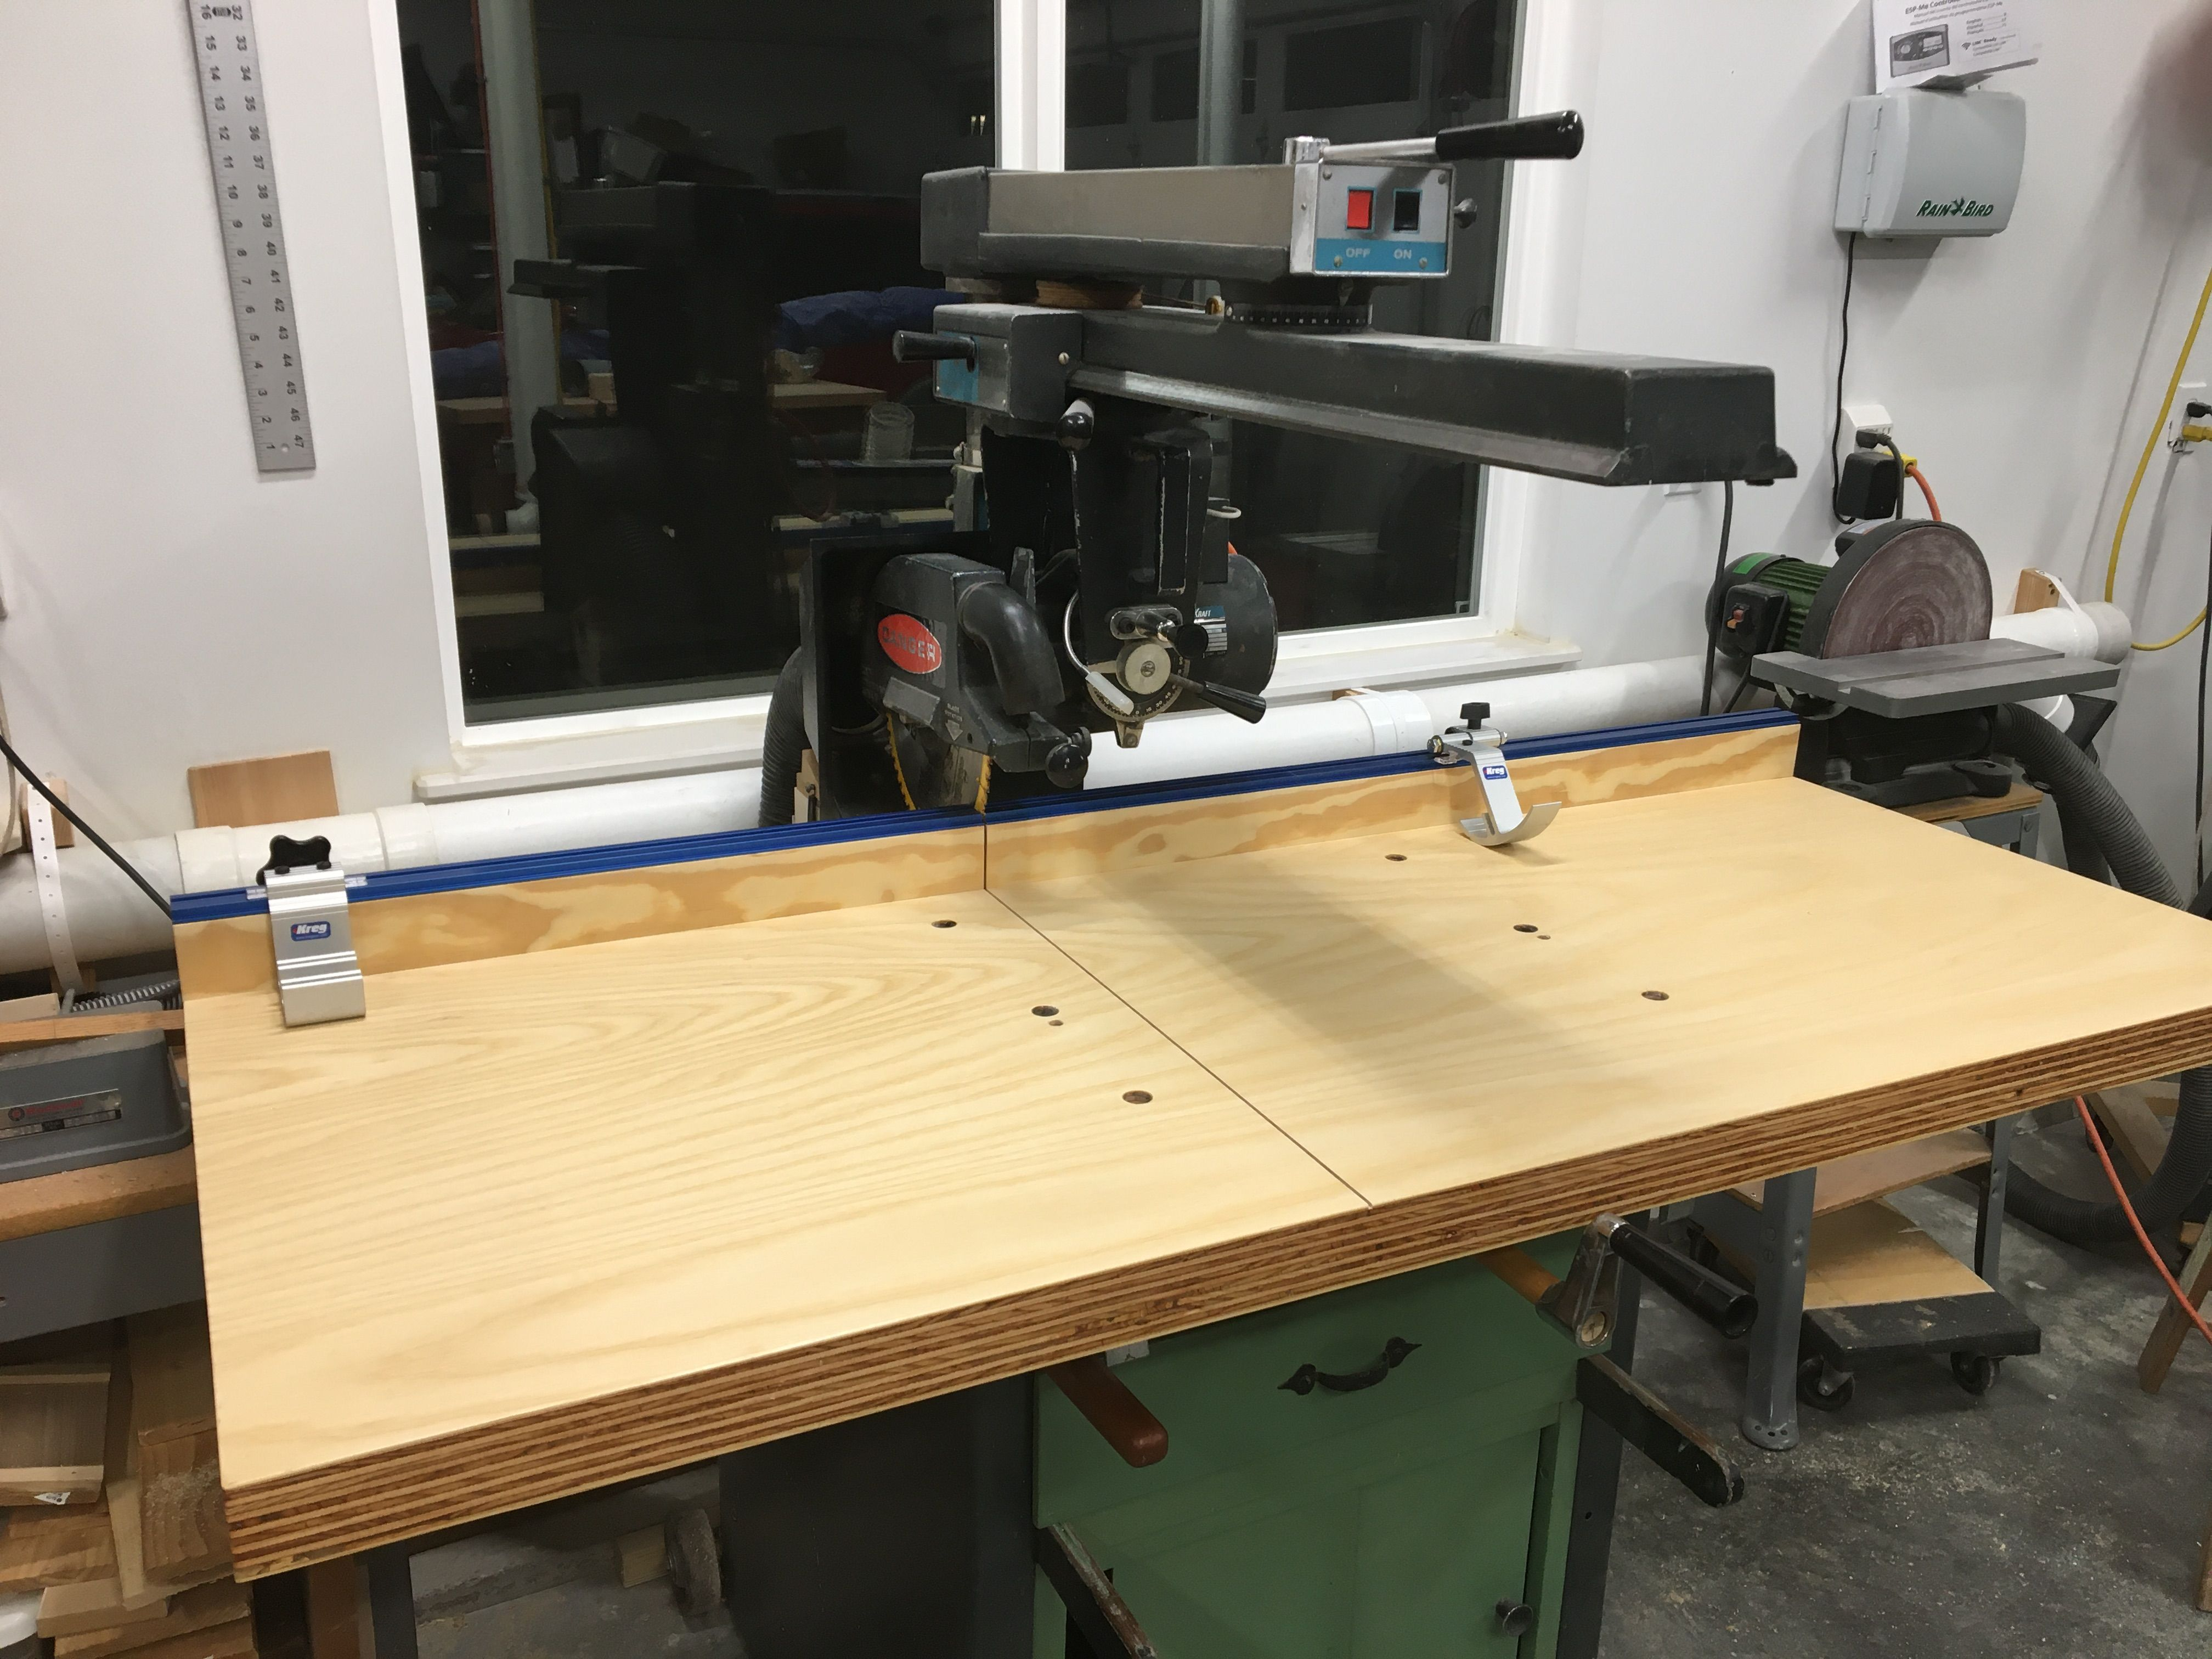 Radial Arm Saw Table Upgrade In 2020 Radial Arm Saw Table Home Decor Table